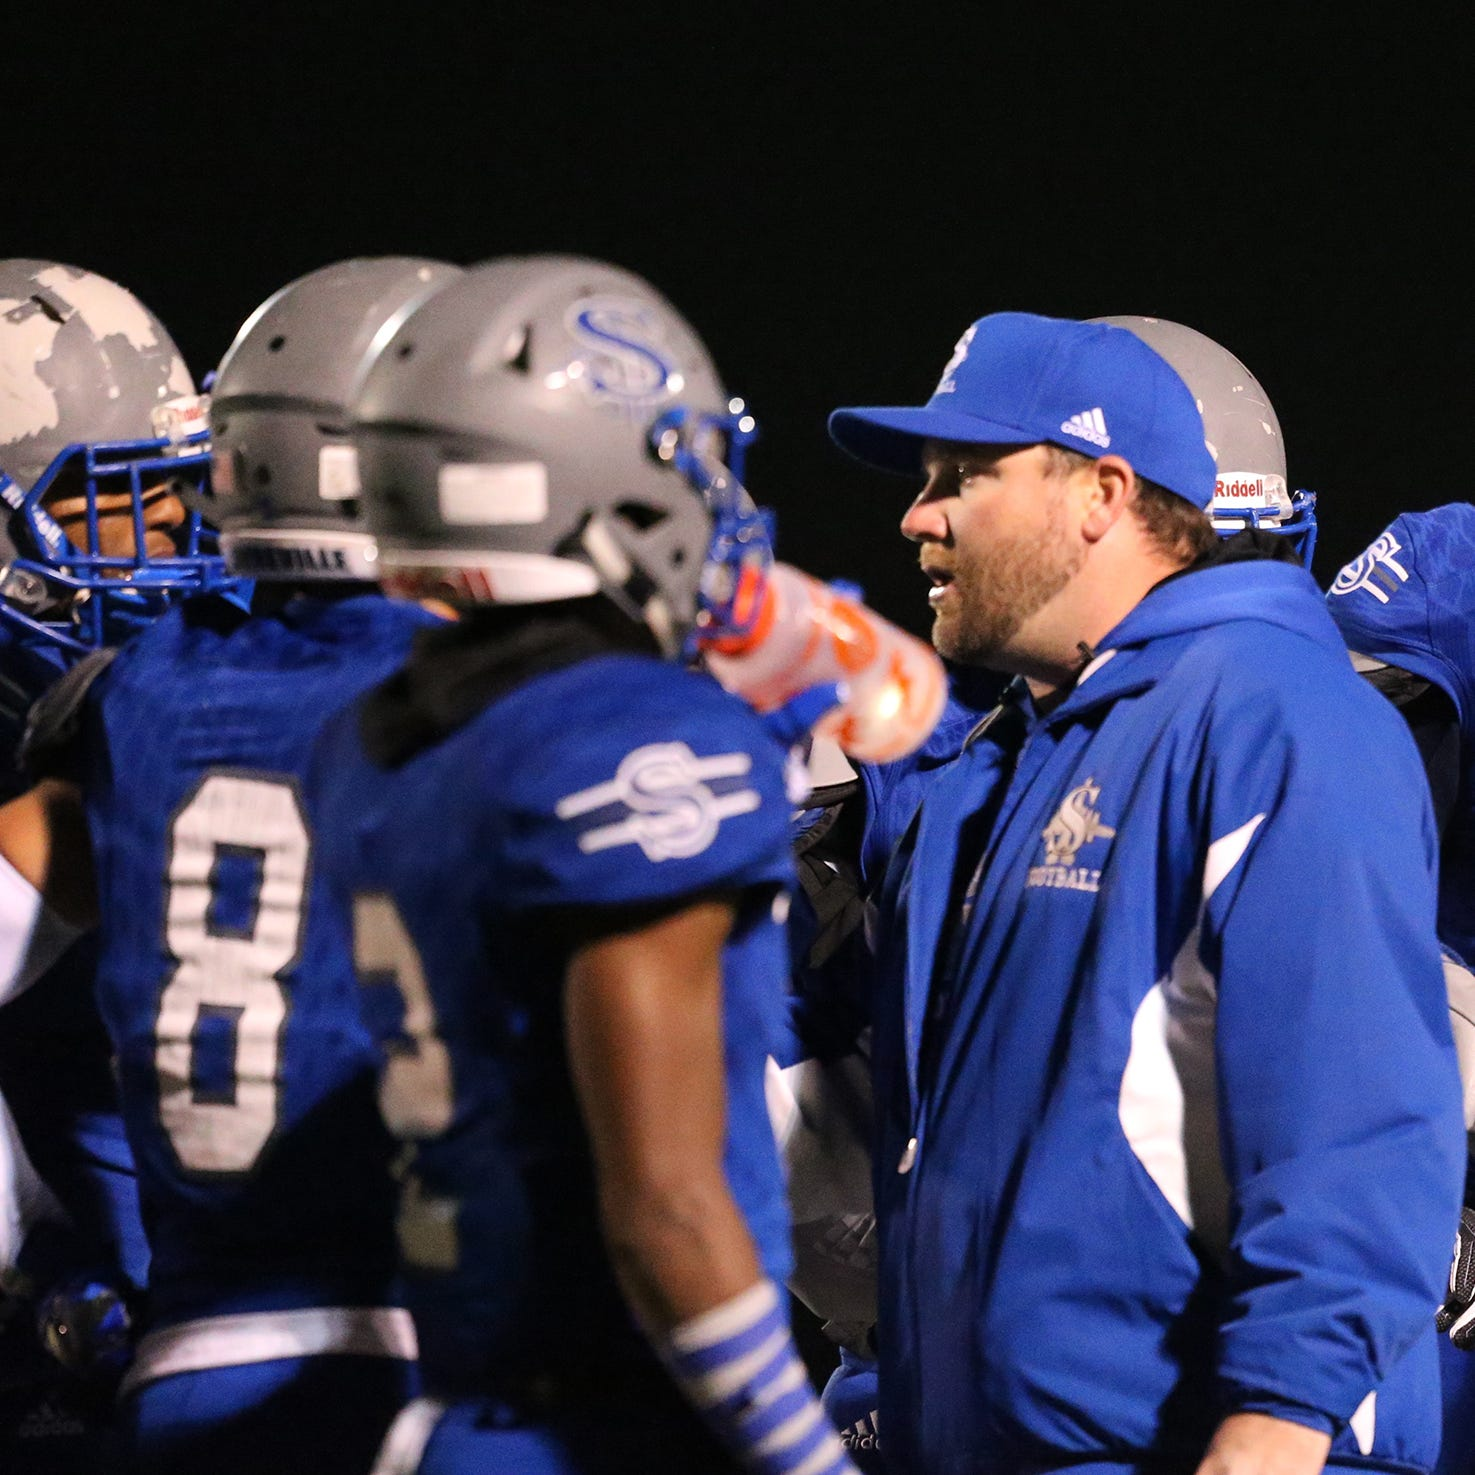 NJ Football: Sayreville defeats Manalapan 24-14 to advance to the Central Group V final